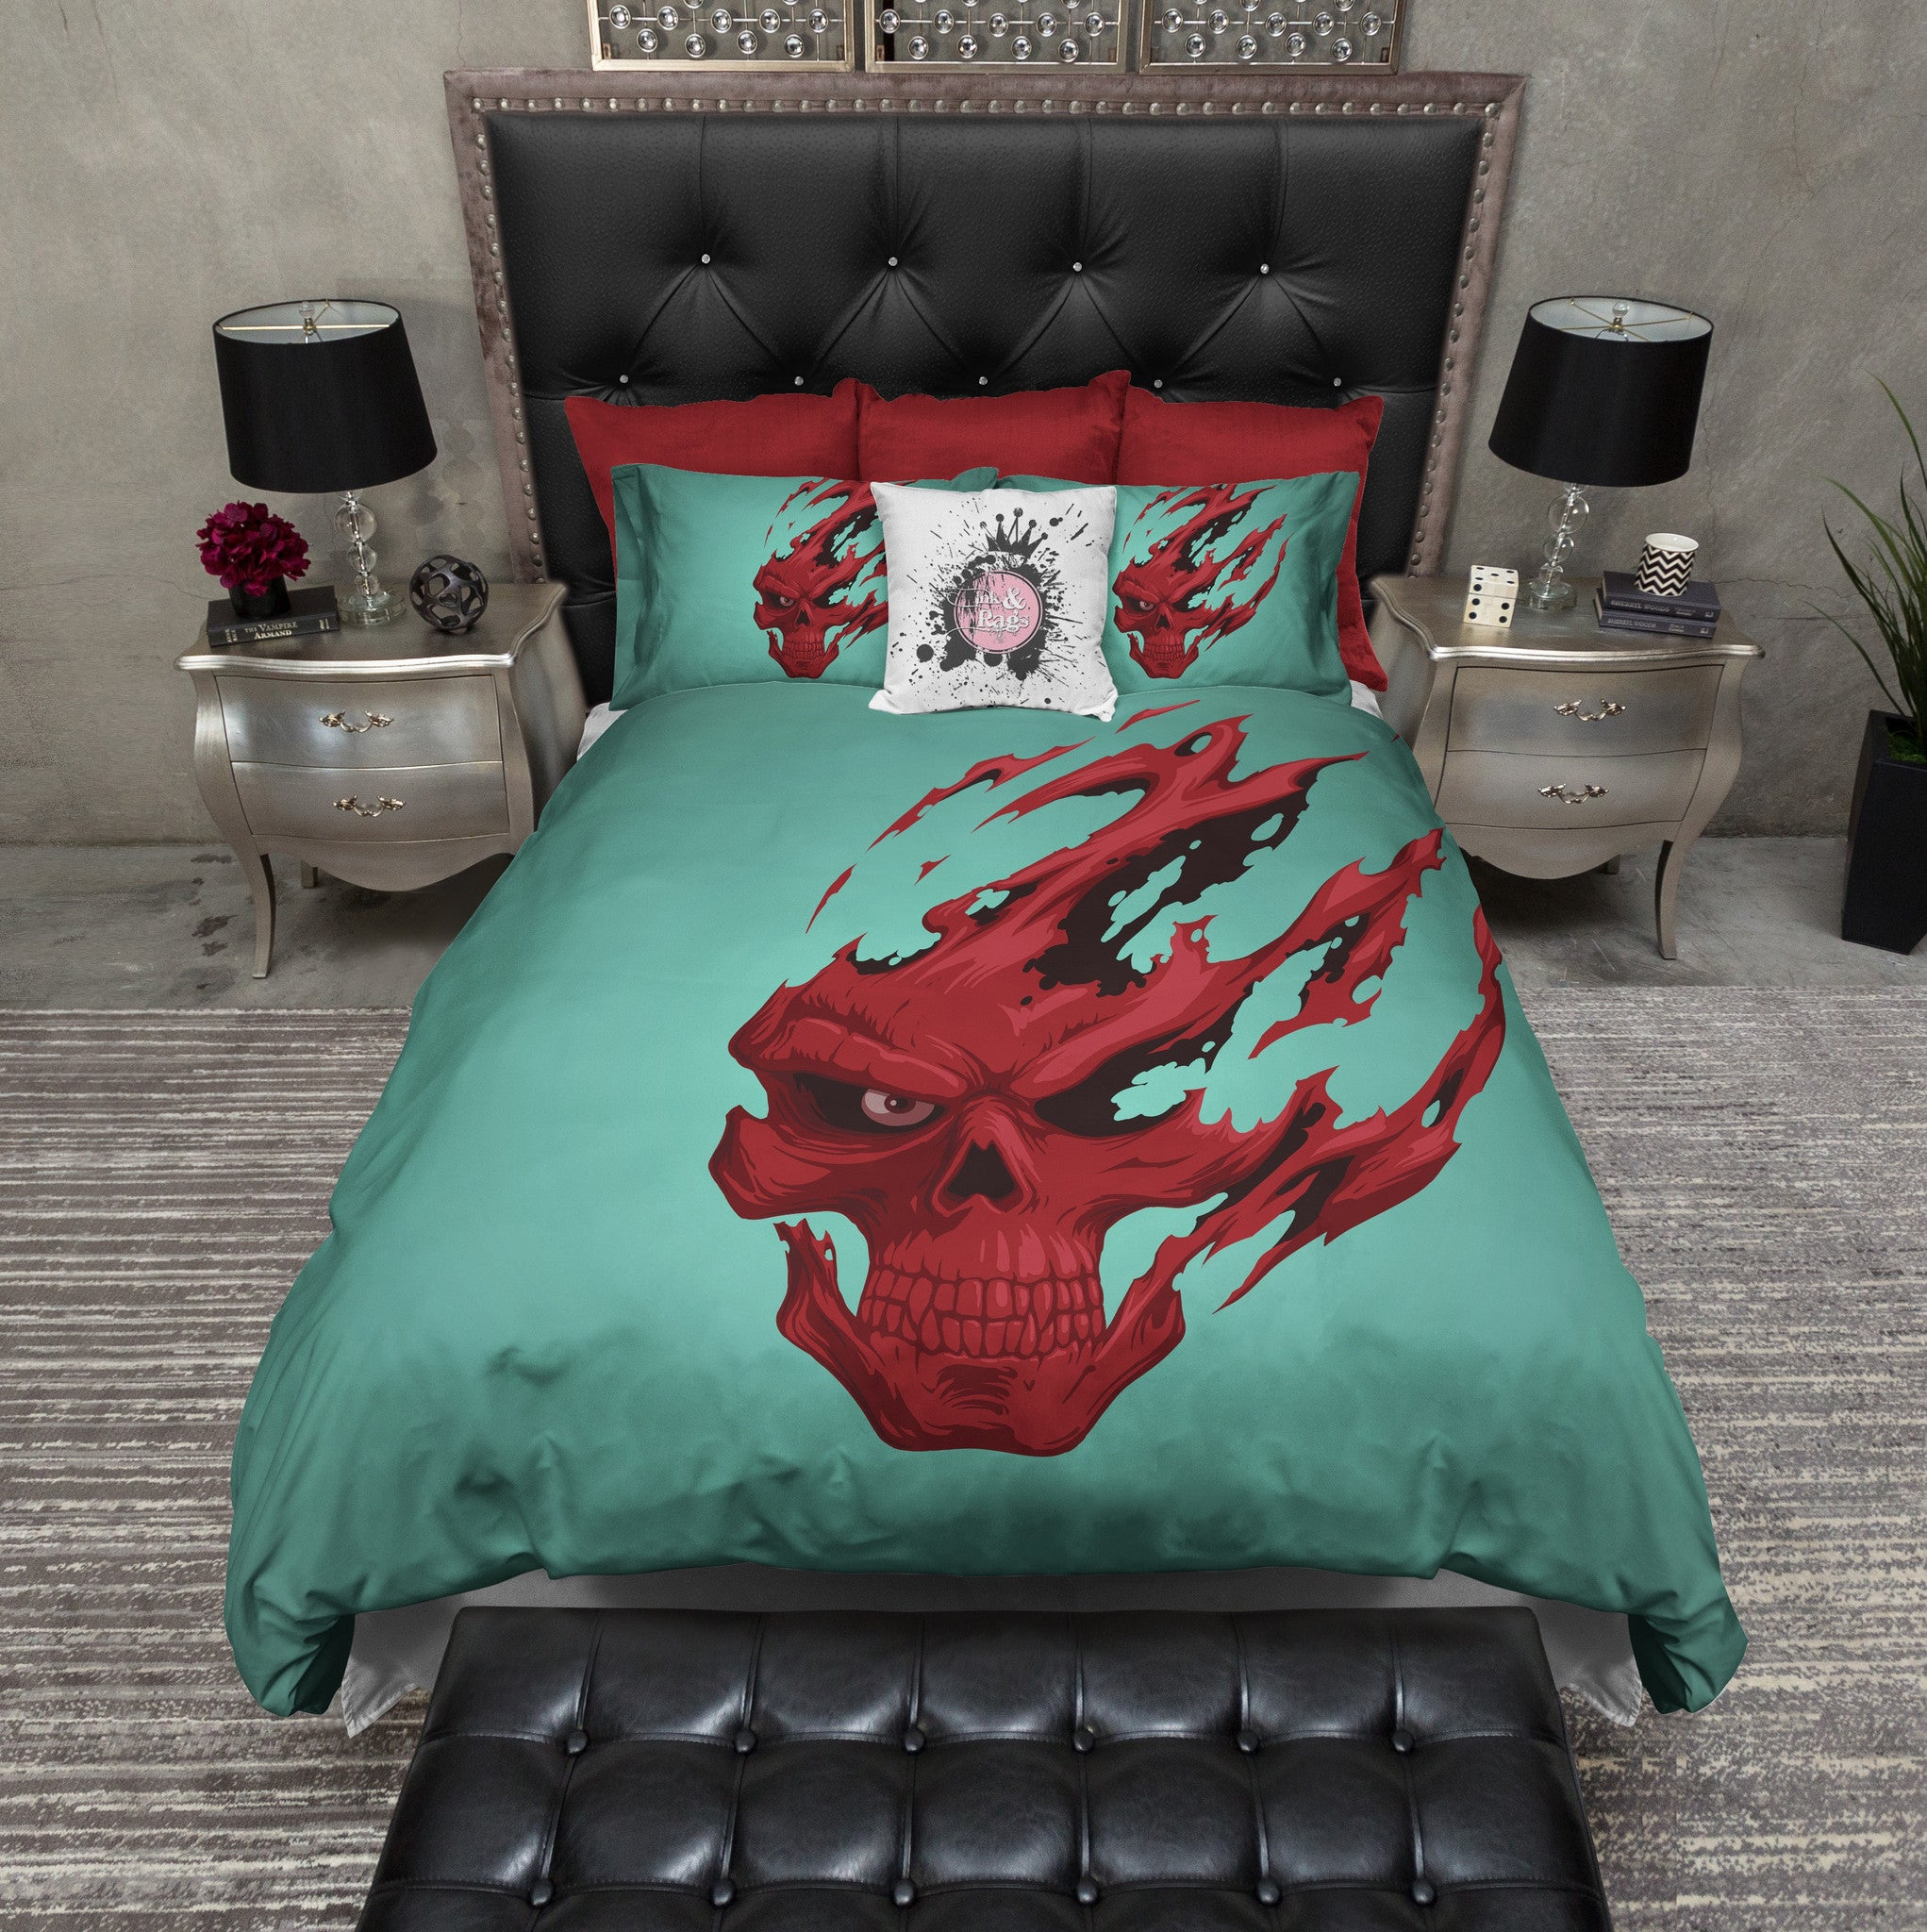 best plaid piece queen set sweetgalas coral sheet flannel single designs ideas solutions teal cushion red sets covers bag full wedding sparkle bedding size of silk double duvets runner duvet black lace case in home dark chinese cover king pink pillow comforters and decoration gold